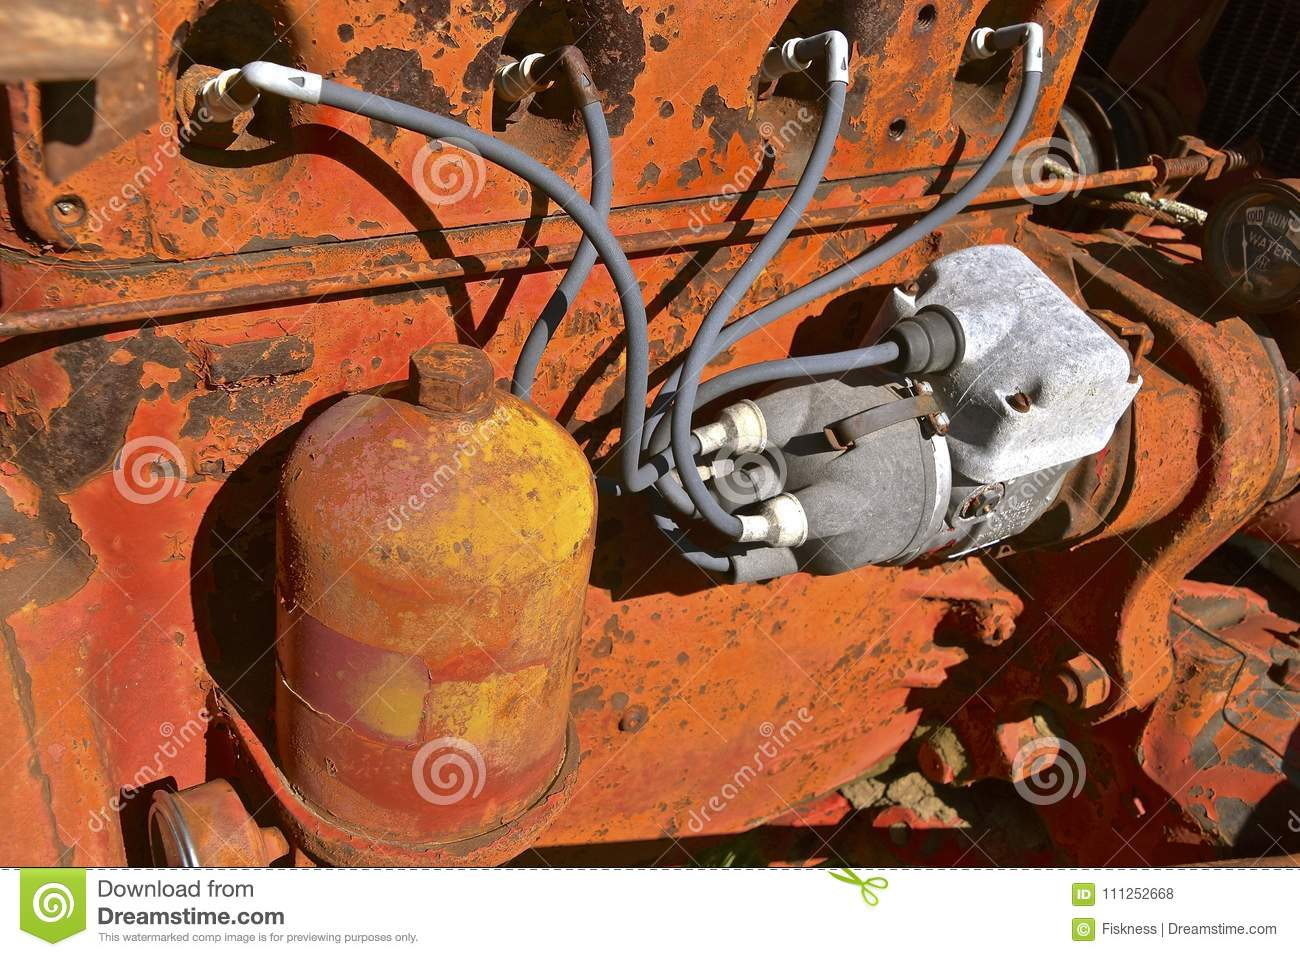 hight resolution of spark plug wiring of an old orange tractor